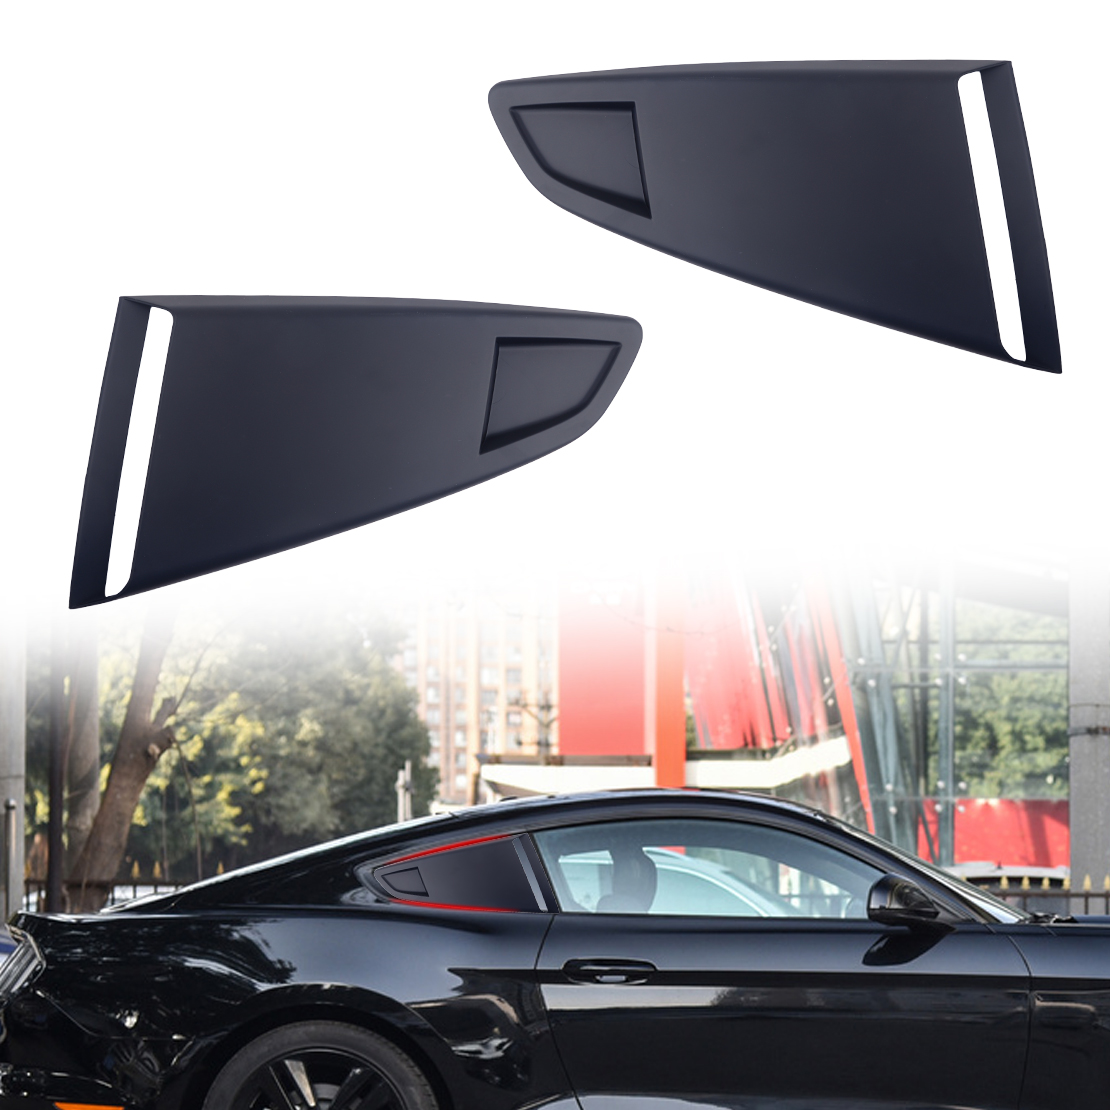 CITALL 1Pair Black Plastic Car Window Quarter Rear Louver Side Vent Scoop Cover Decor Fit For <font><b>Ford</b></font> <font><b>Mustang</b></font> <font><b>2015</b></font> 2016 2017 2018 image